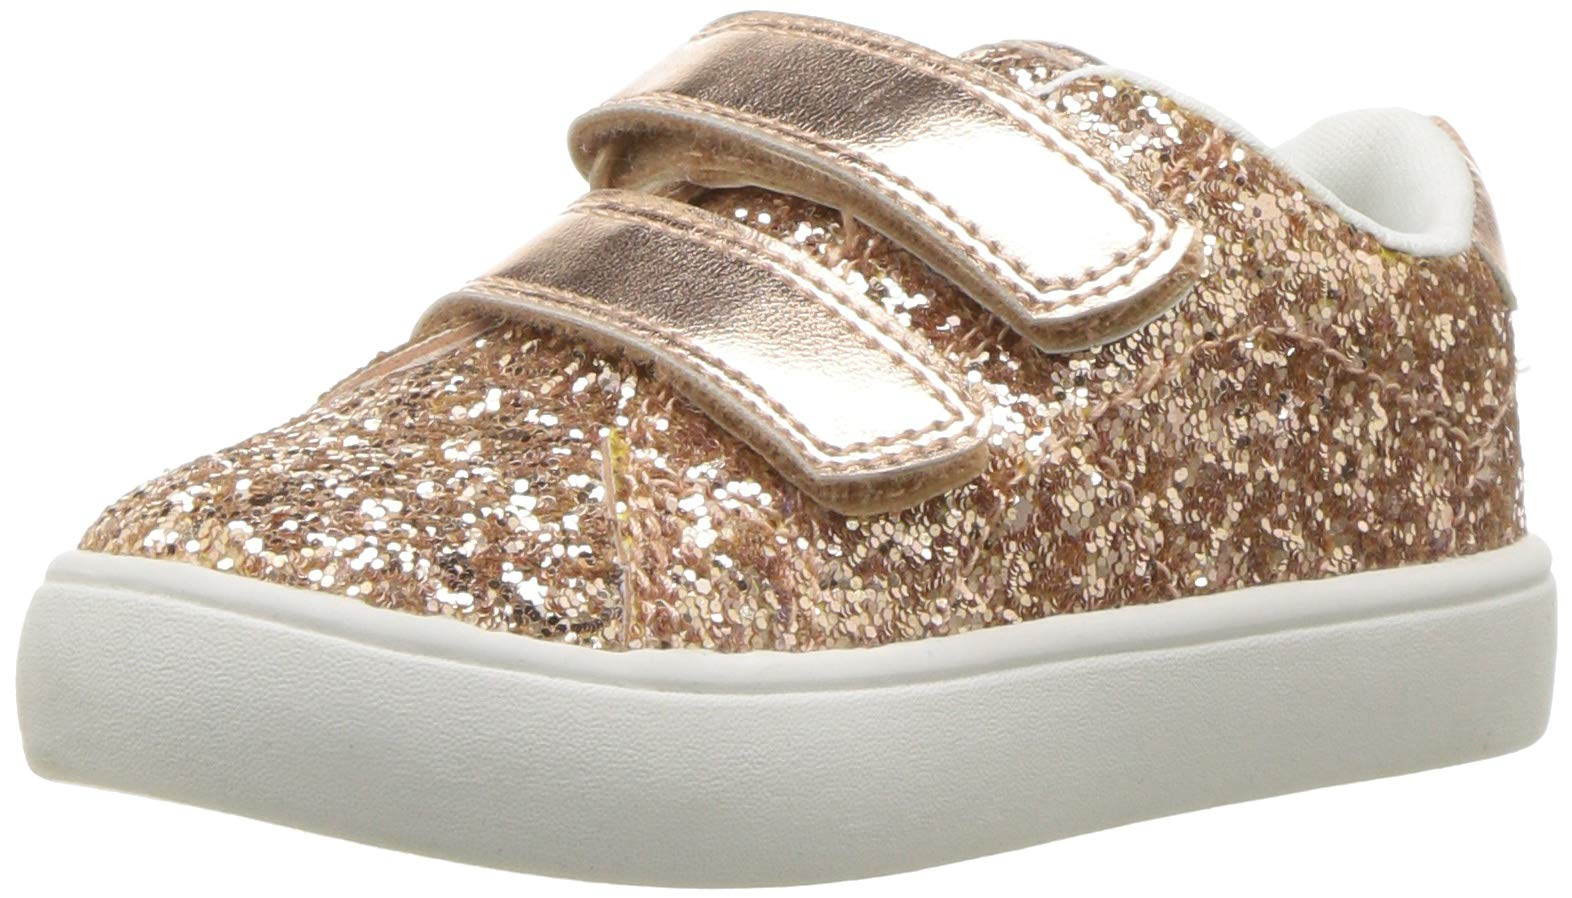 carter's Girls' Andee2 Rosegold Casual Sneaker, Rose Gold, 11 M US Little Kid